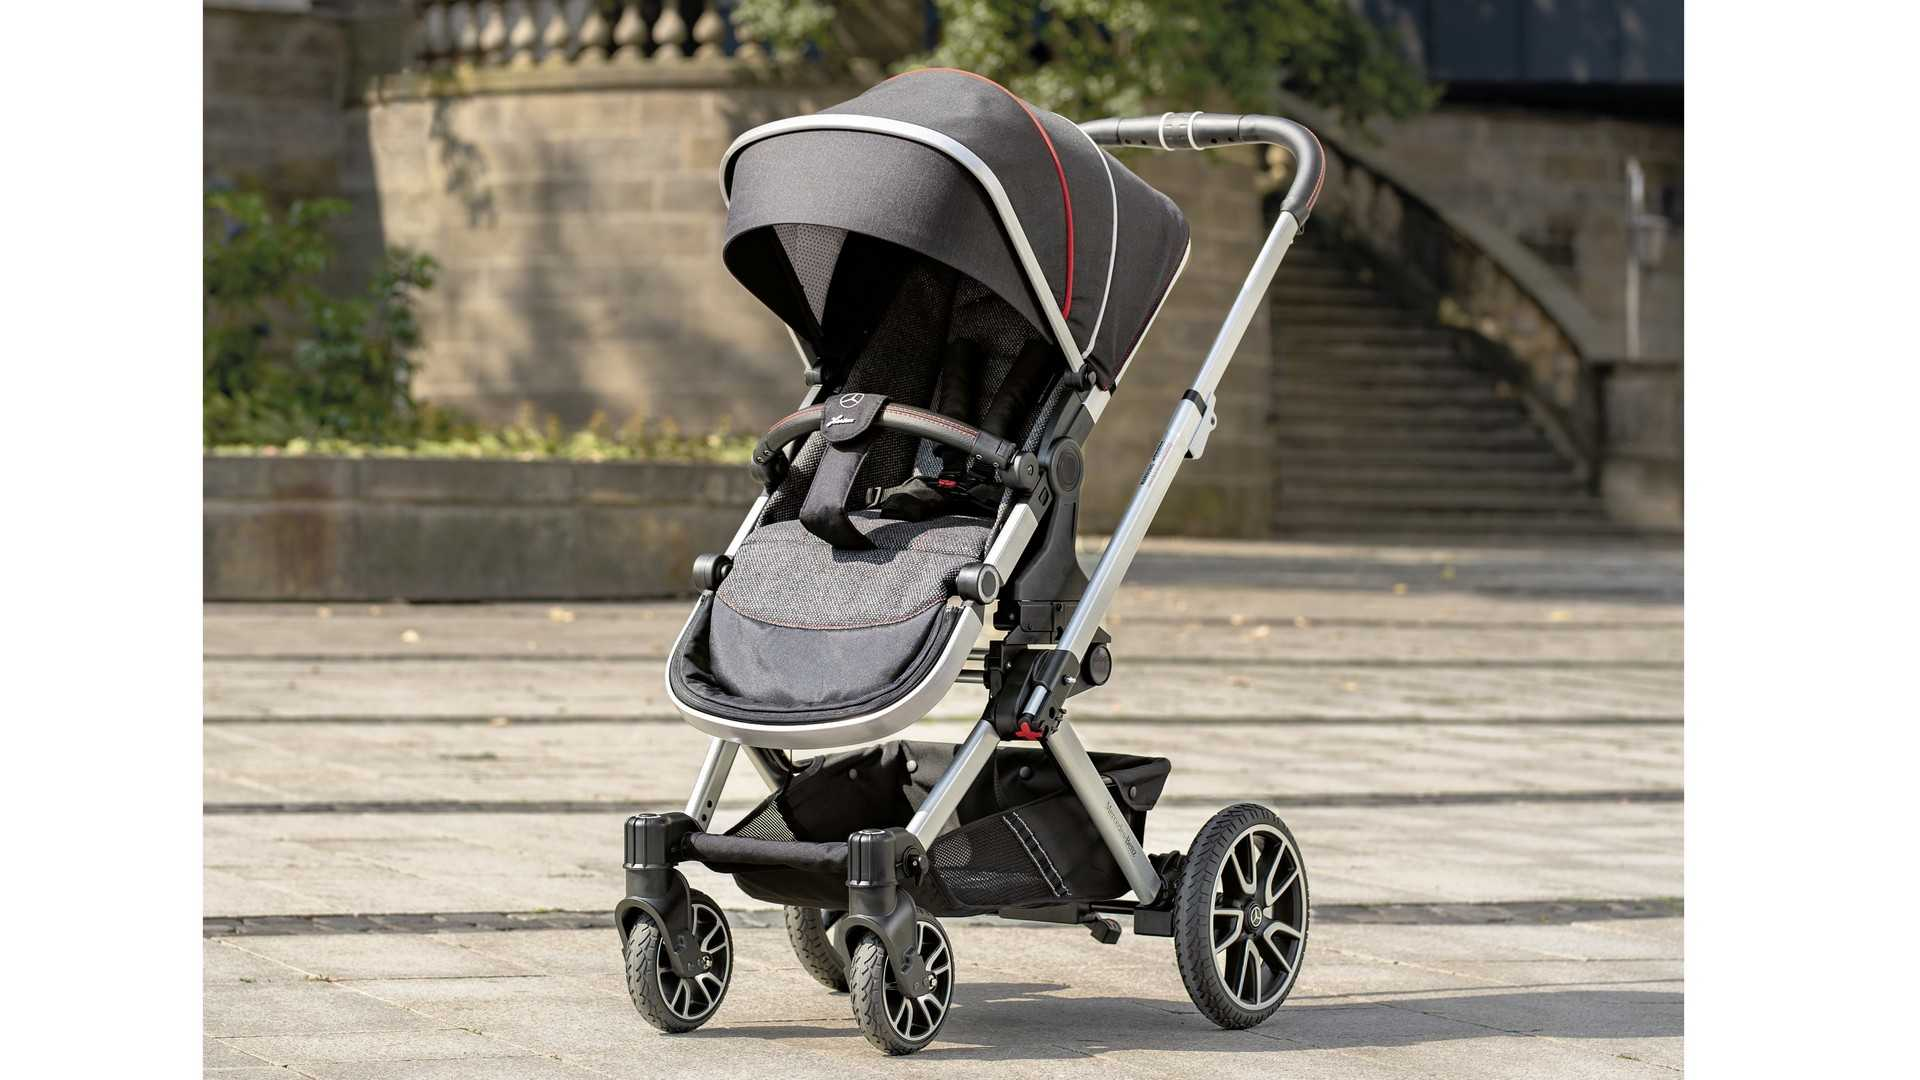 Baby Buggy Mercedes The Mercedes Of Baby Strollers Rides On C Class Amg Wheels